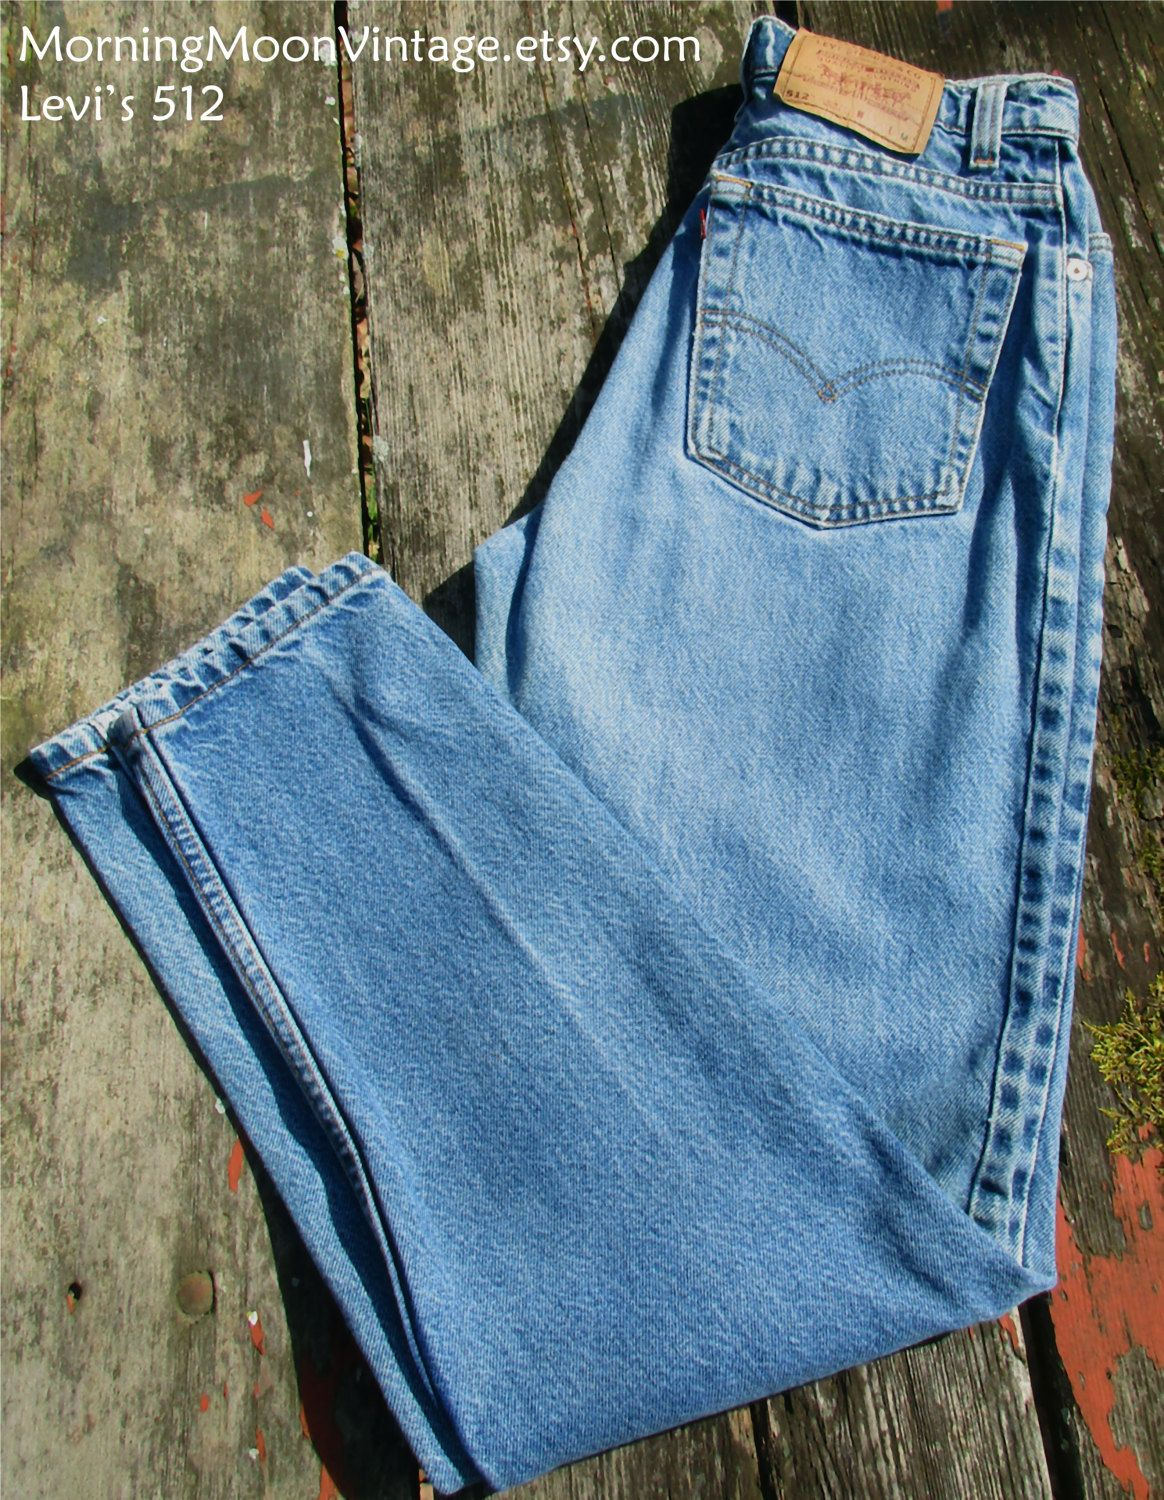 6a1d4692d97 VINTAGE LEVIS 512, Mom jeans, boyfriend jeans, worn-in faded denim, high-waisted  jeans, 90s grunge, tapered leg slim fit, waist 28 inseam 29 by ...